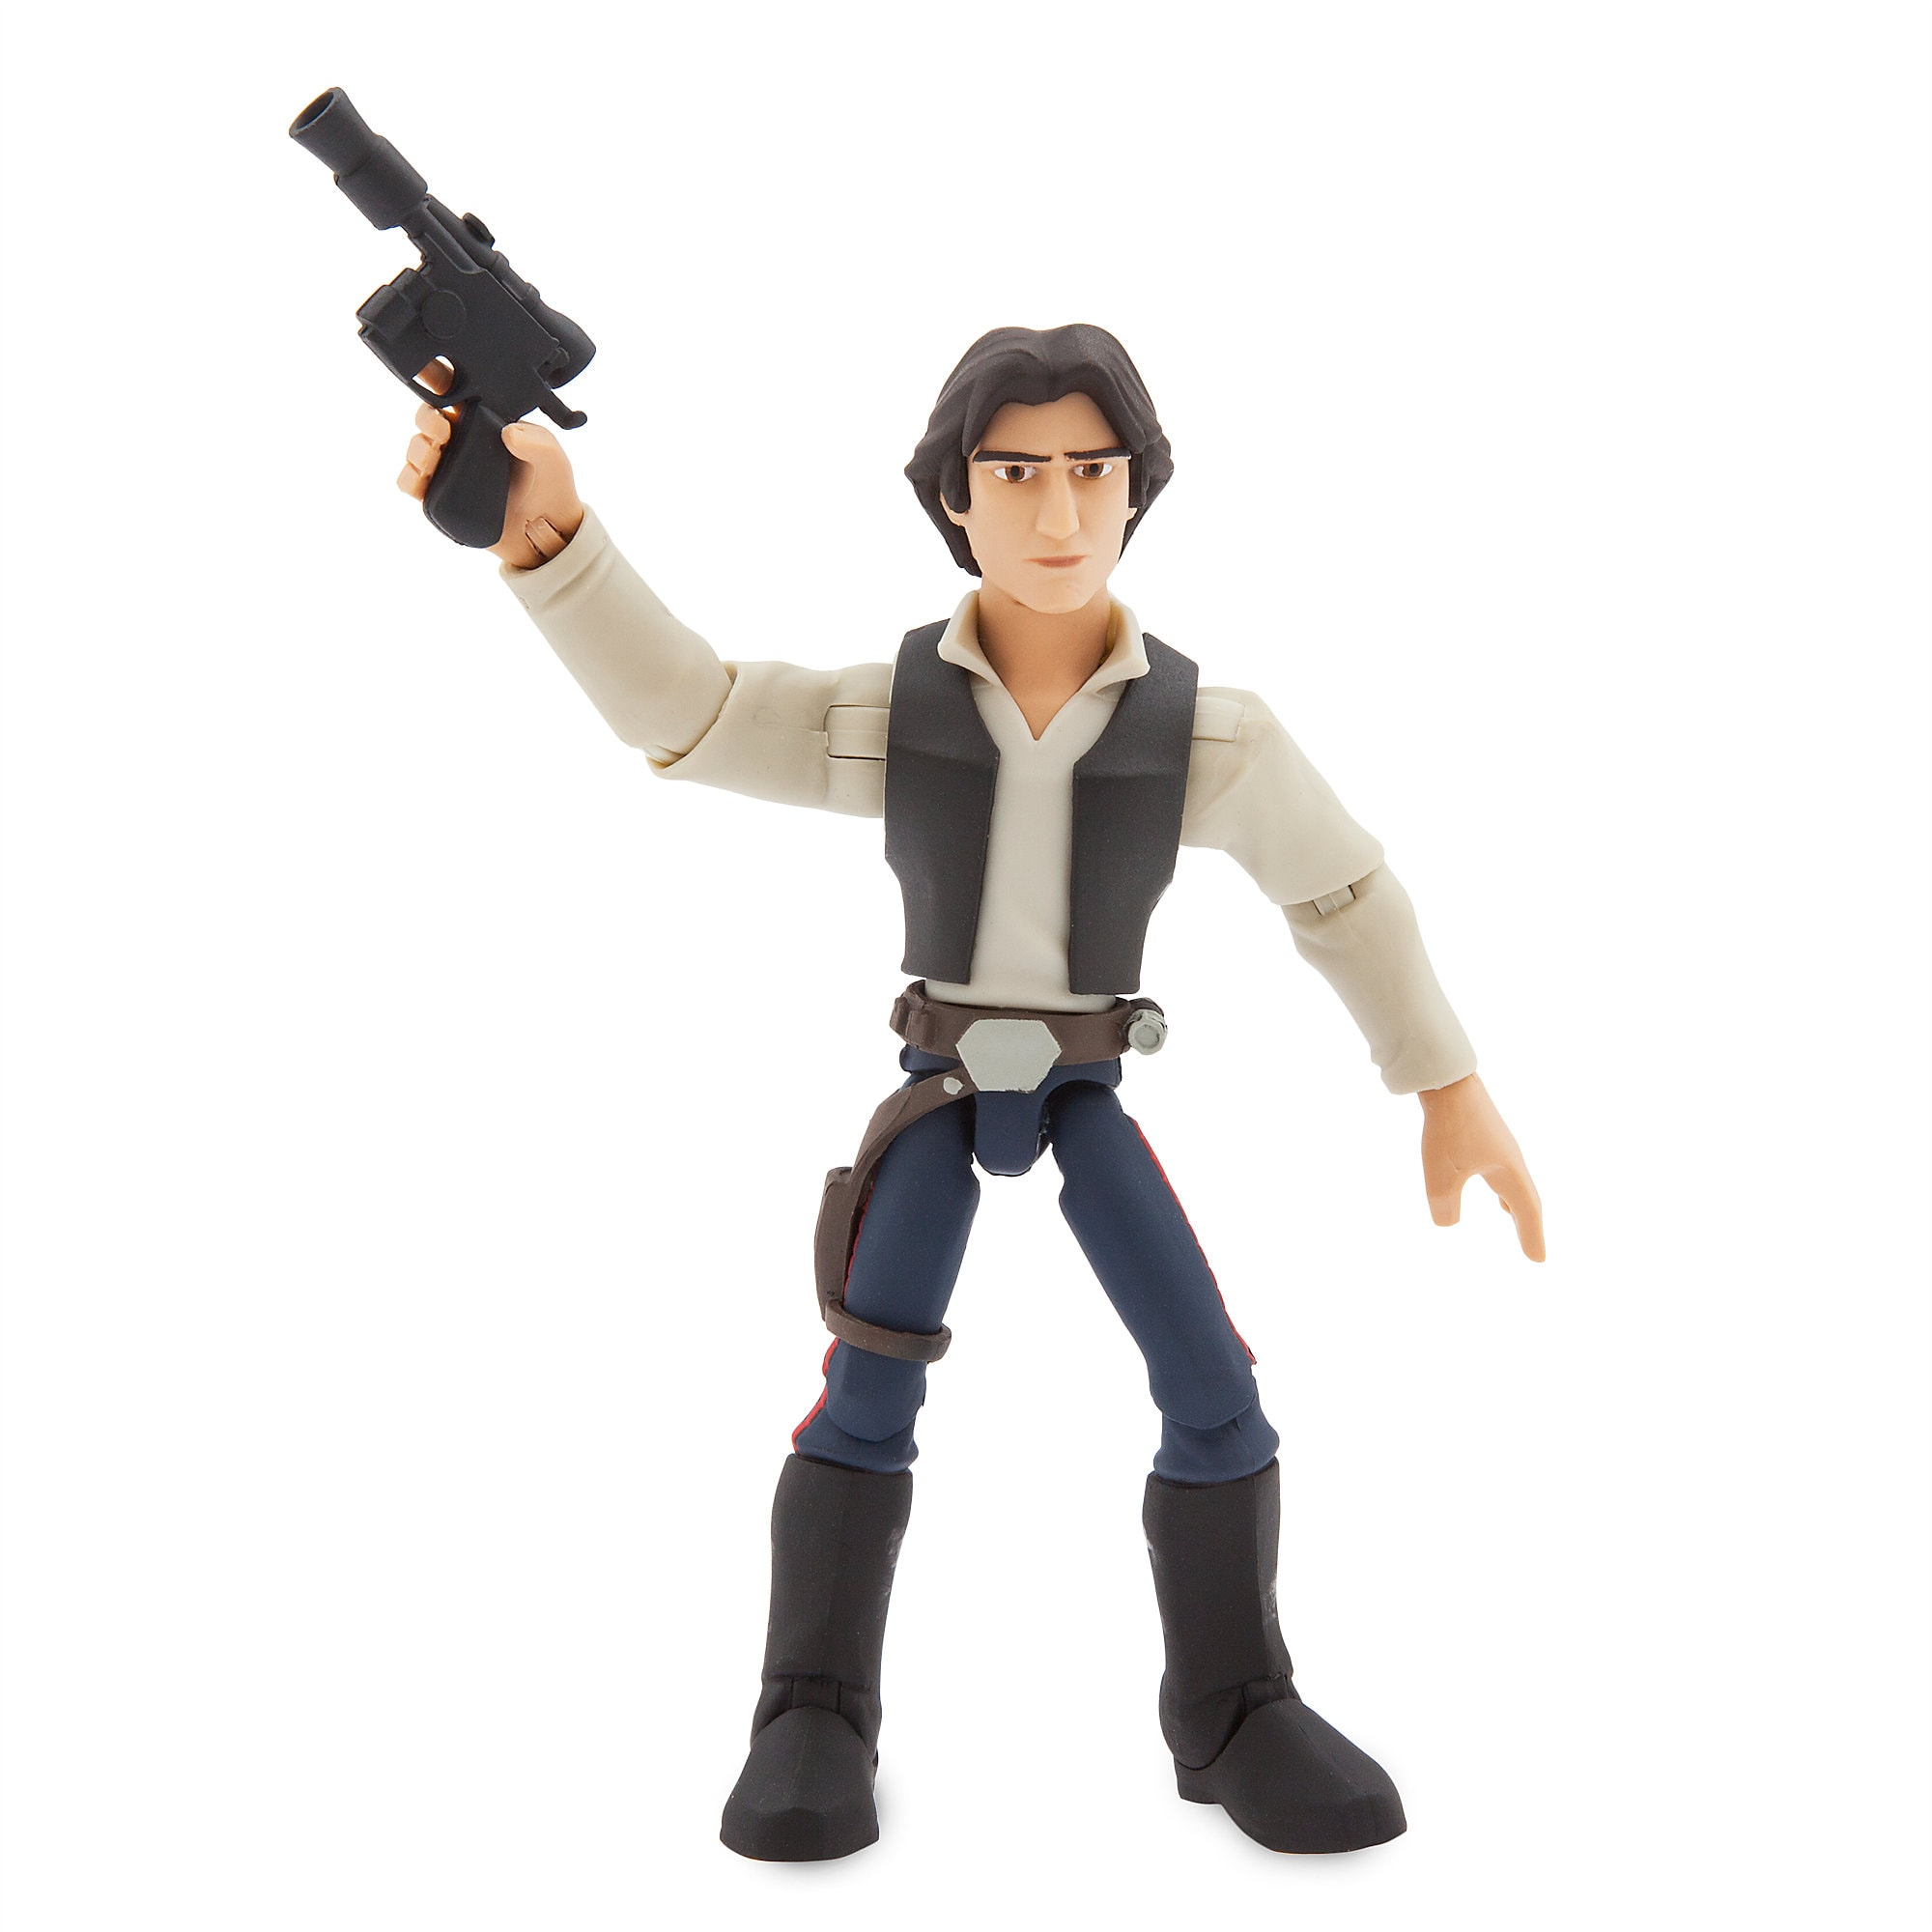 Han Solo Action Figure - Star Wars Toybox